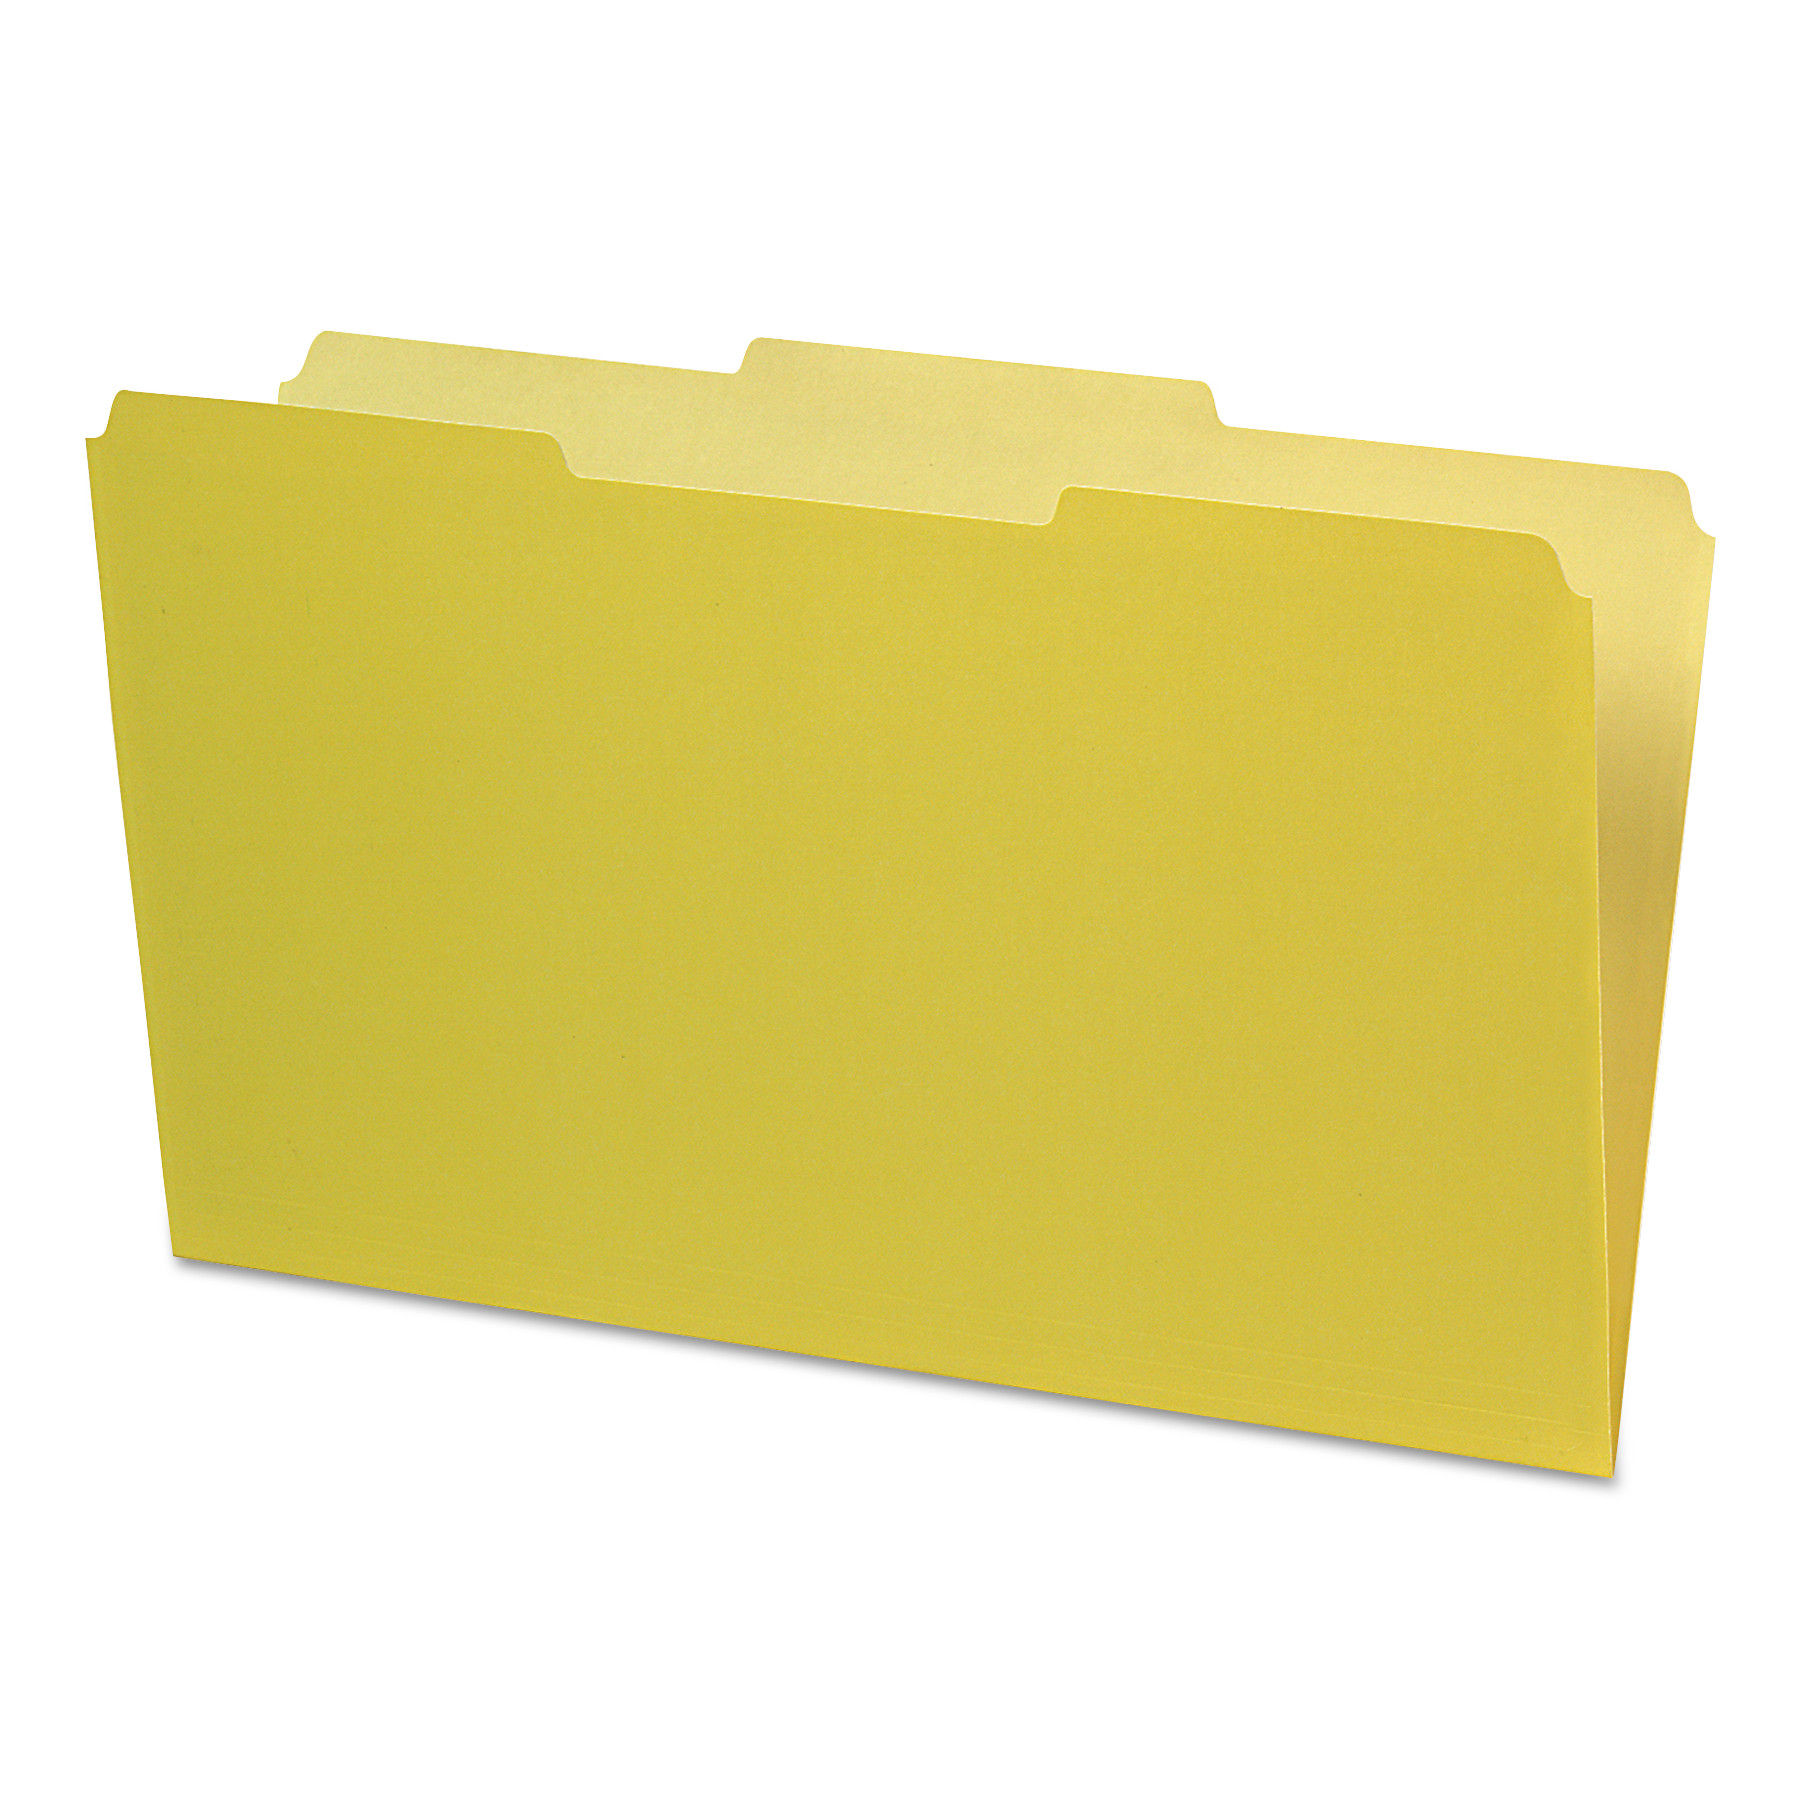 Pendaflex Hanging File Folders Letter Size NOS sealed box of 10 YELLOW